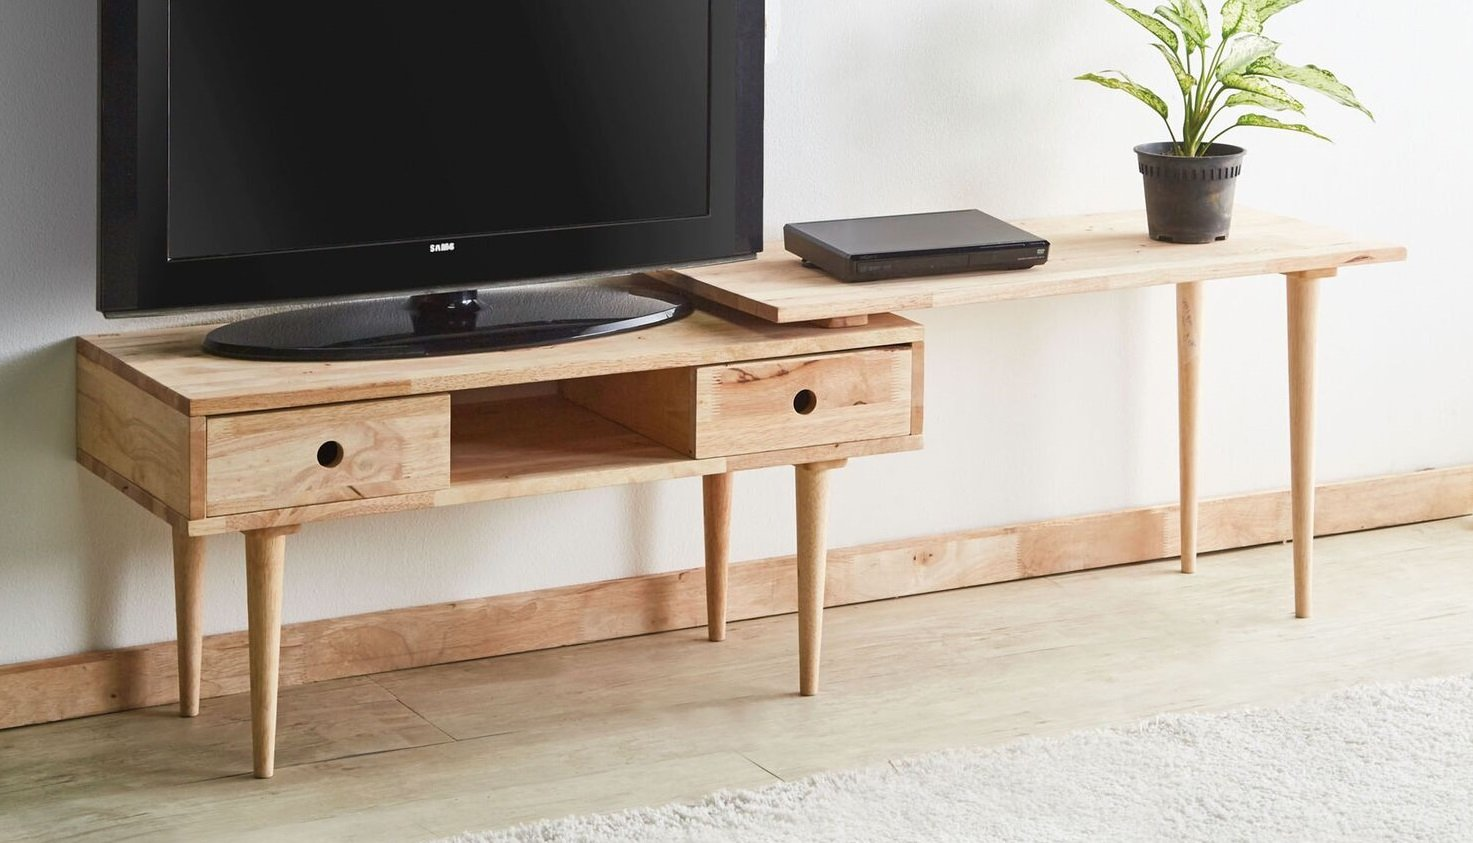 """Major-Q 35"""" Natural Wooden TV Stand/Coffee Table with Extension, 9081950 - Major-Q is a registered furniture trademark brand. Please search Major-Q for more high quality furniture related products All Major-Q Products will be covered with Limited Major-Q Warranty. Please buy with confidence. TV Stand w/Extension Top, 35"""" x 16"""" x 19""""H - tv-stands, living-room-furniture, living-room - 71pZ21j%2BHnL -"""